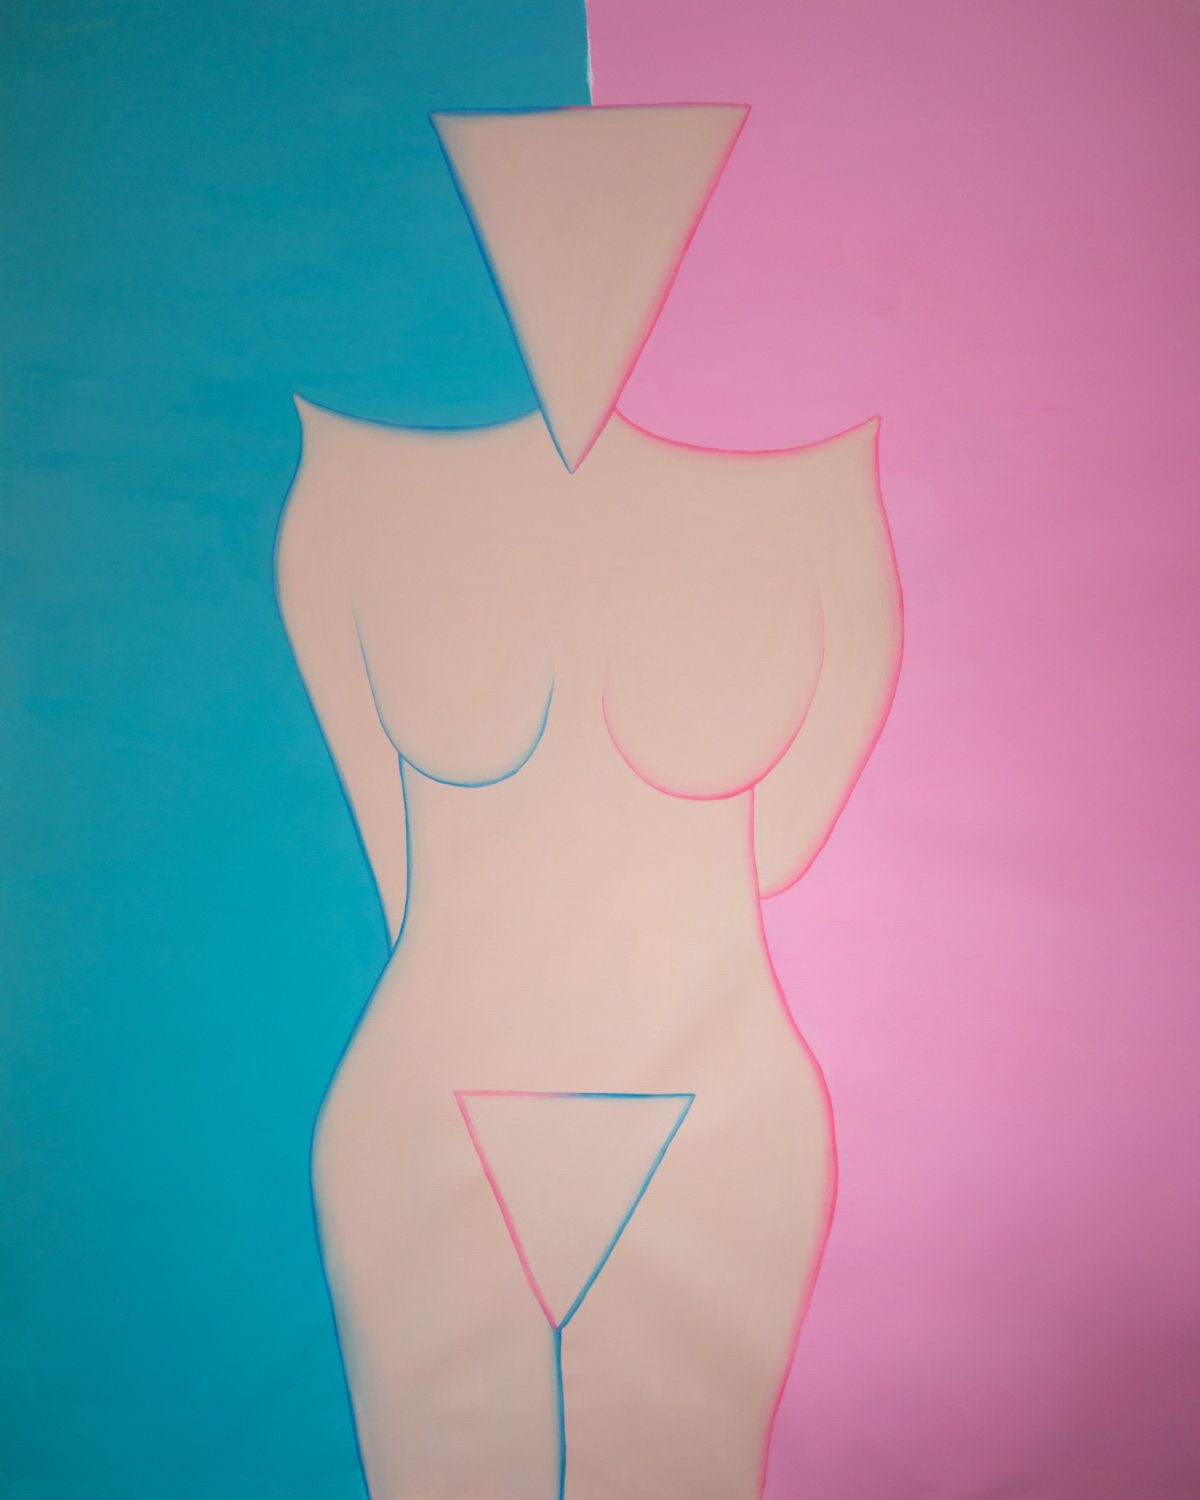 annique-delphine-The Opposite of Less 2020 - Arcylic on canvas - 150 - 175 cm